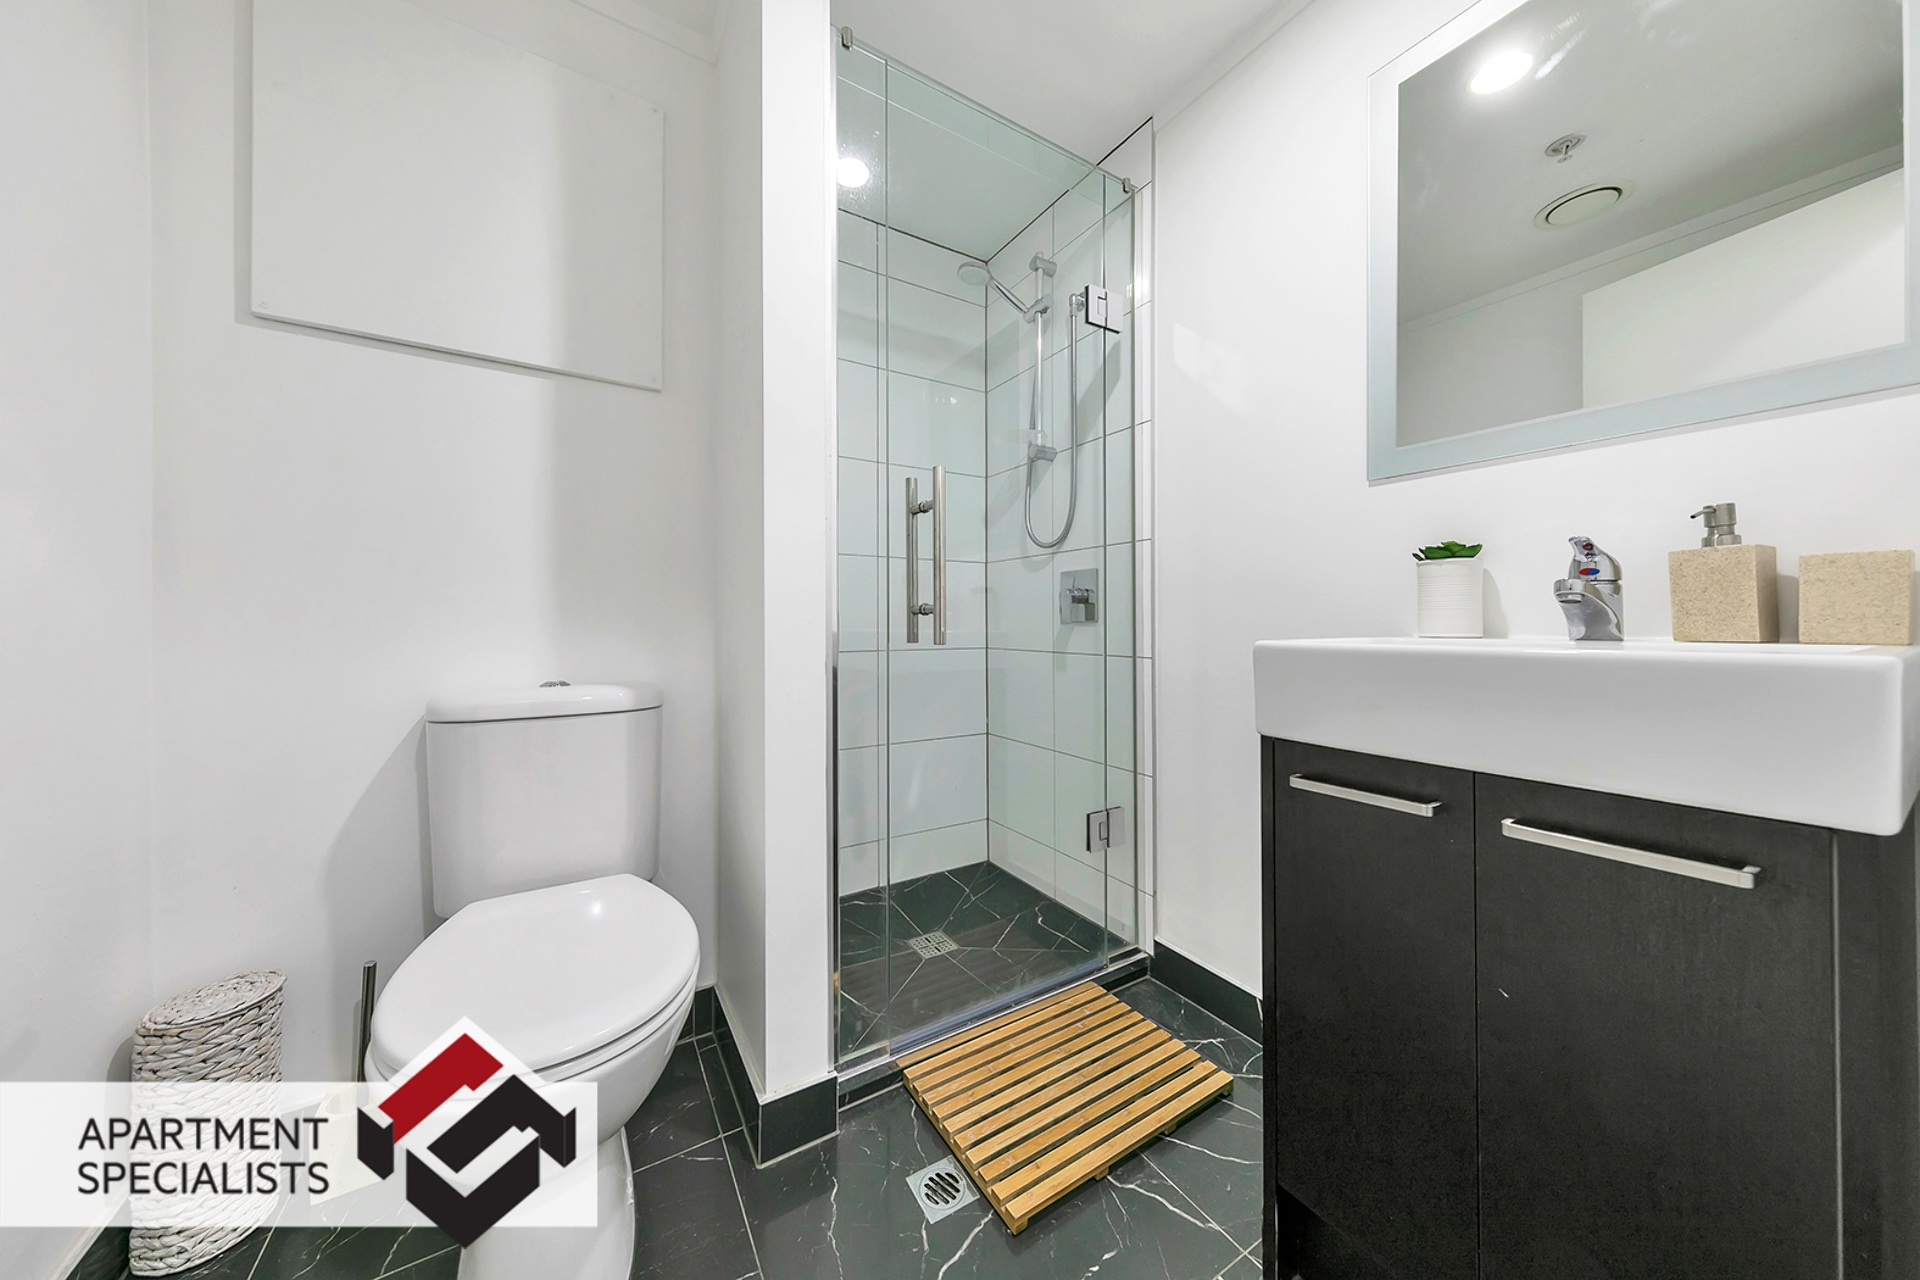 9 | 8 Bankside Street, City Centre | Apartment Specialists